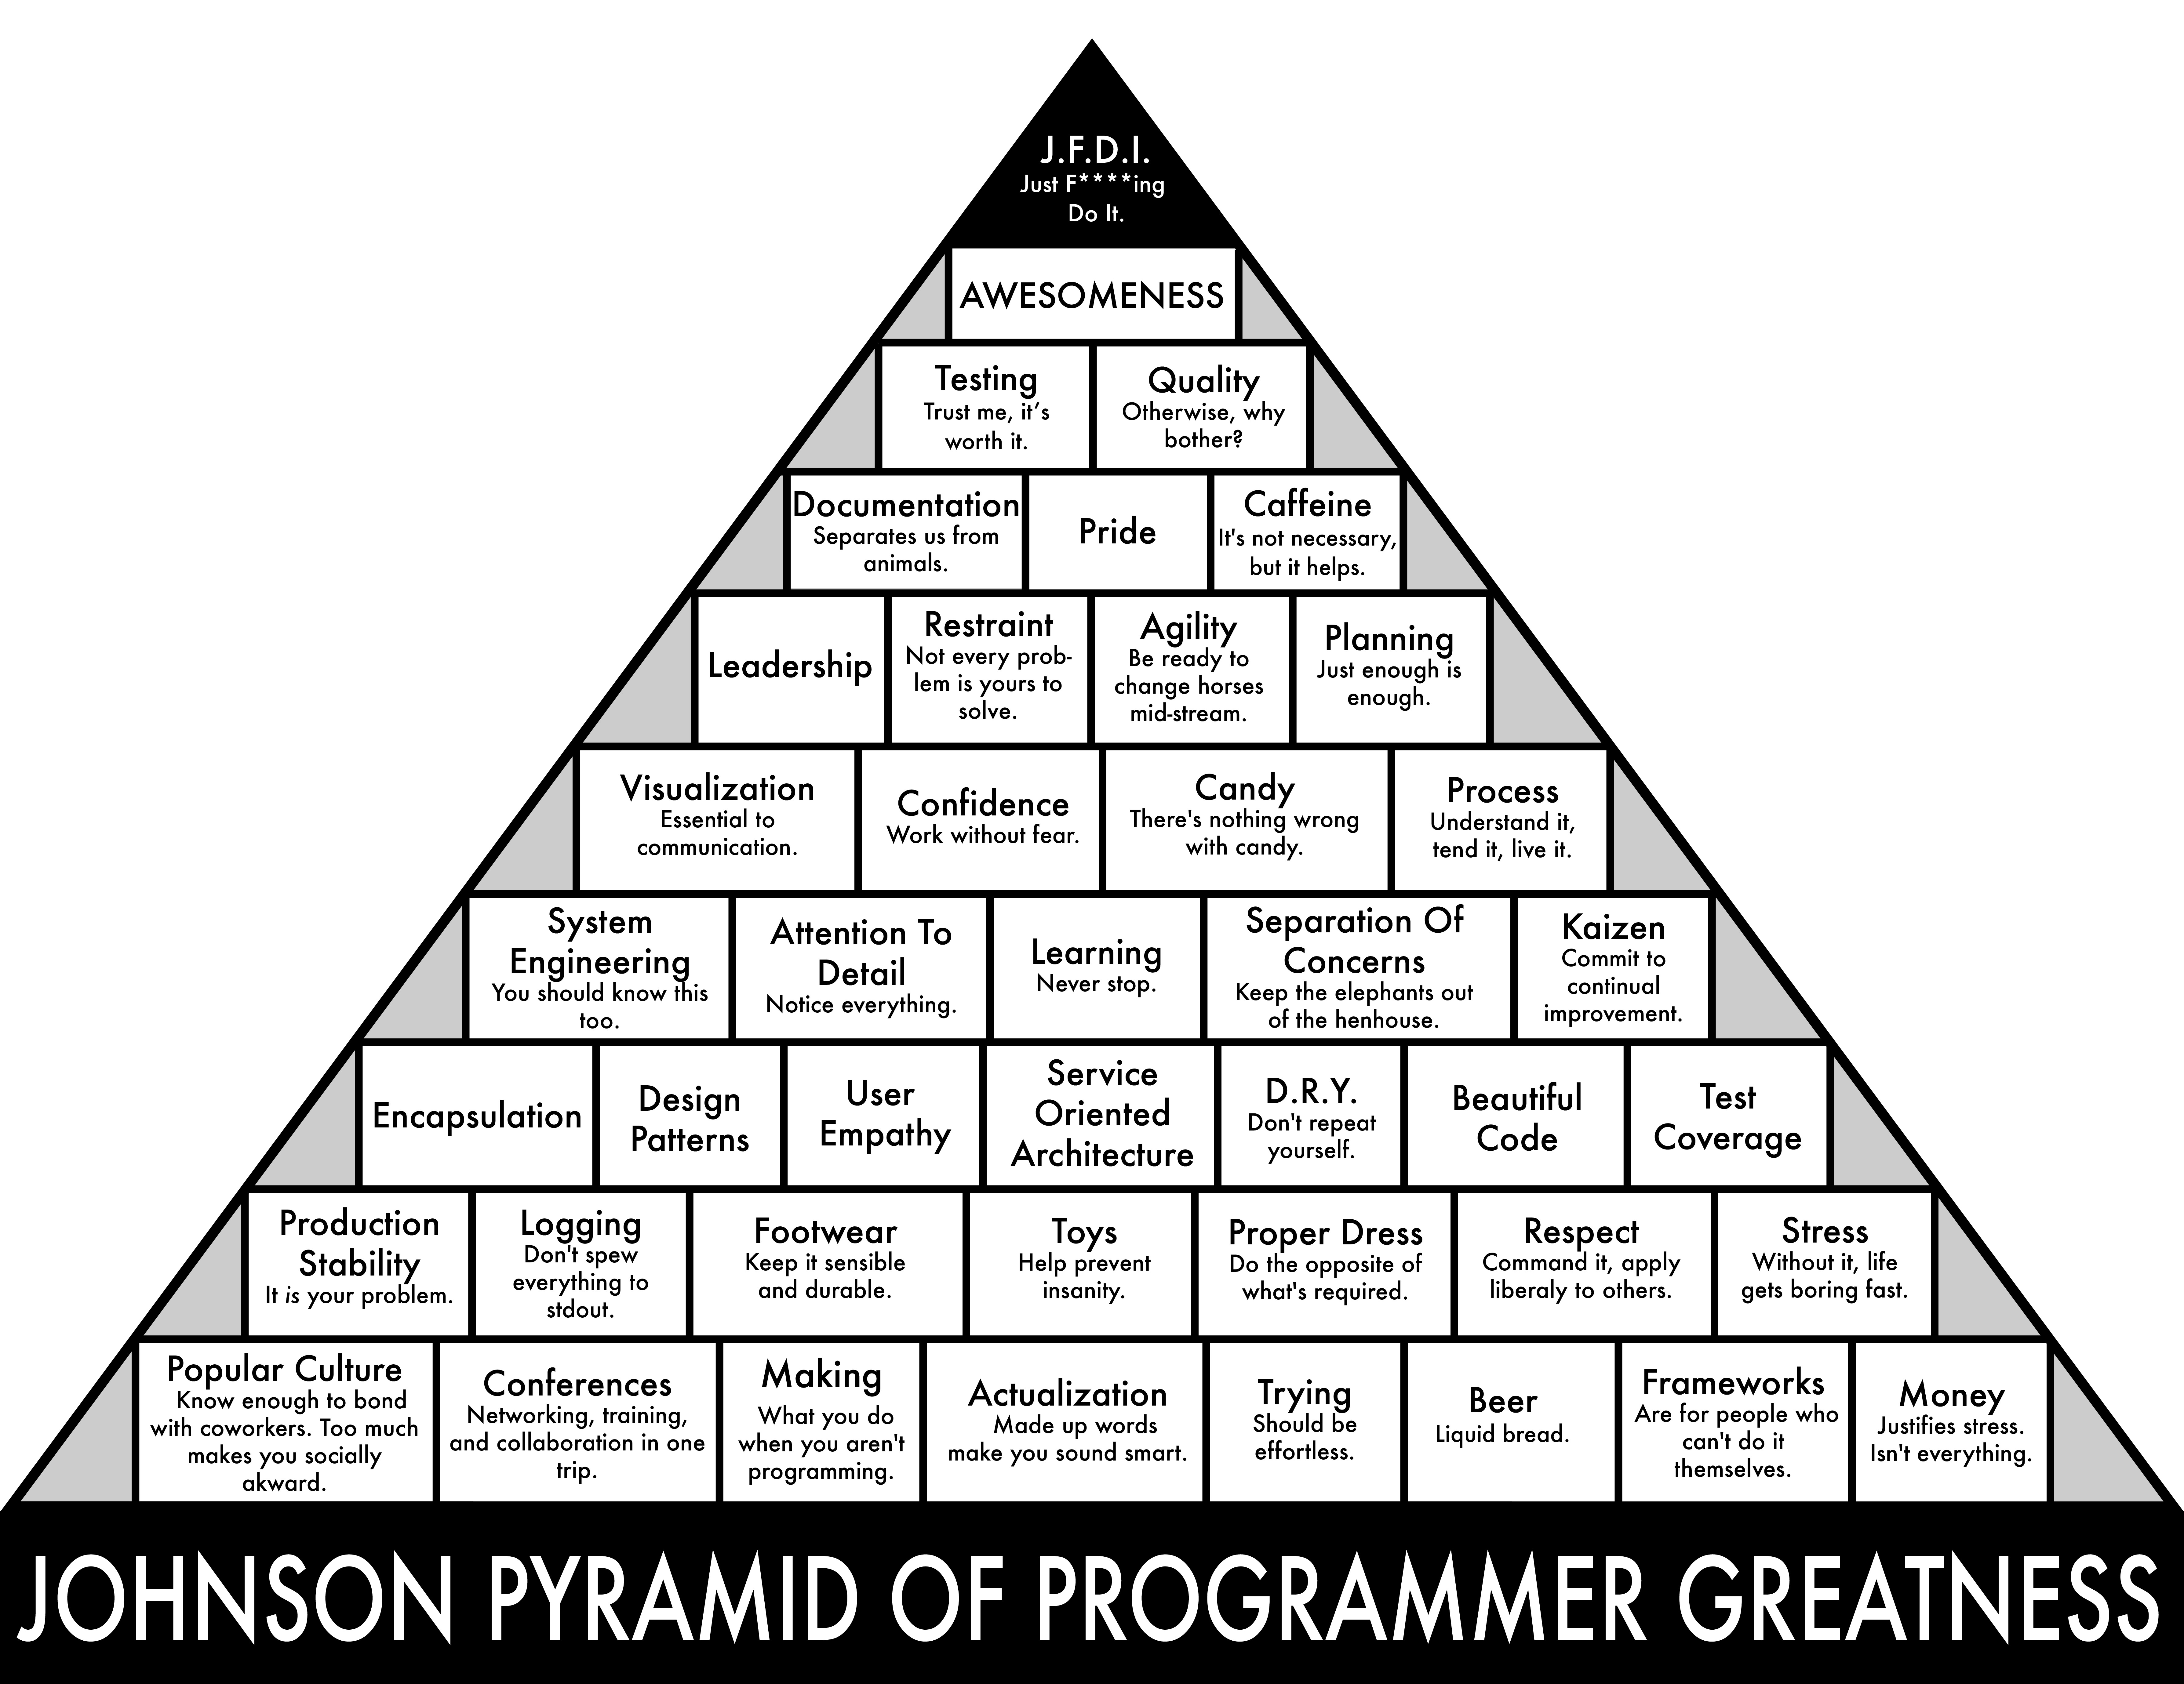 graphic relating to Ron Swanson Pyramid of Greatness Printable Version named The Johnson Pyramid Of Programmer Greatness - The Gathered